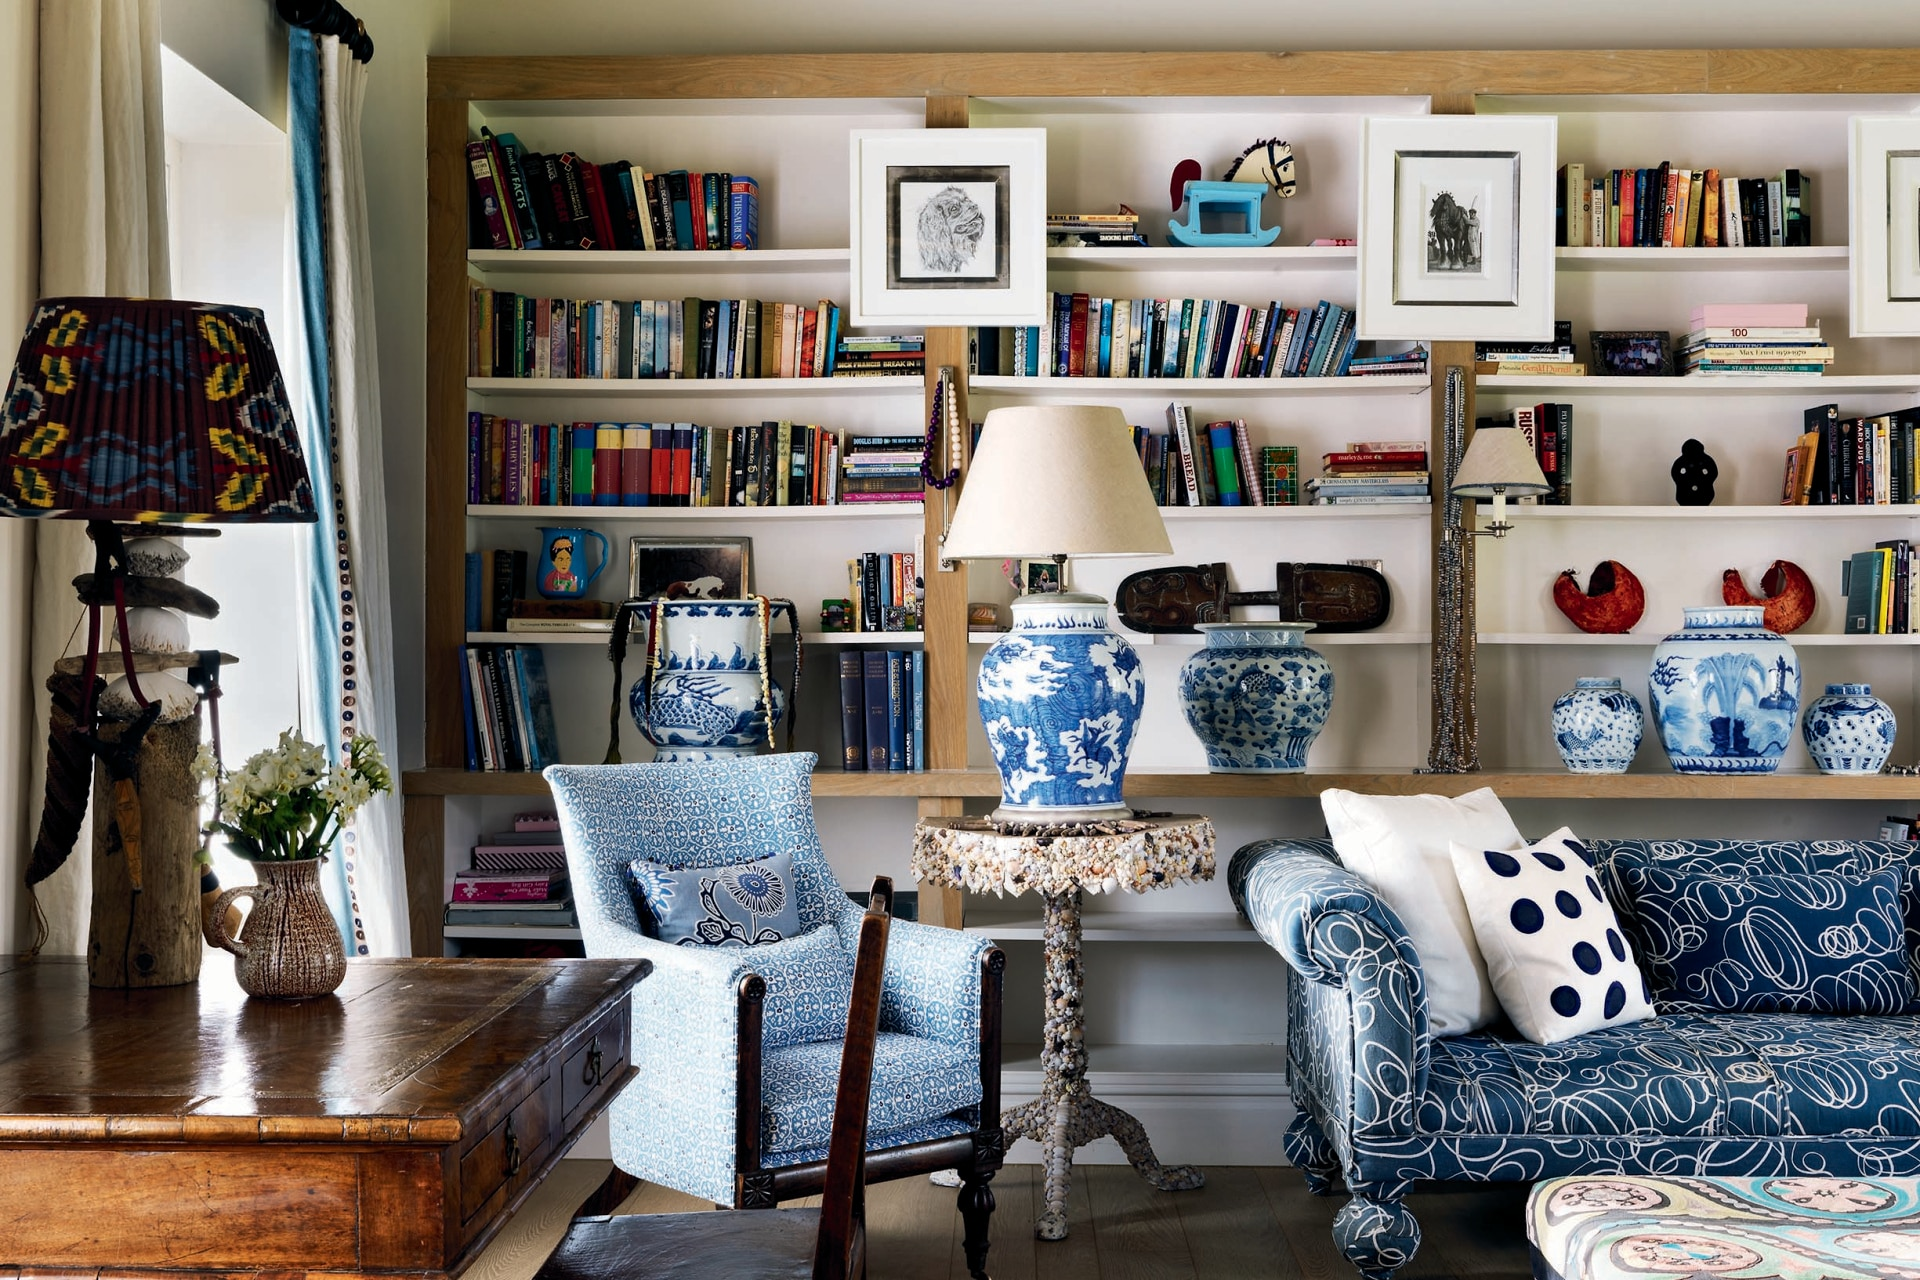 Kit Kemp shares her dos and don'ts of interior design